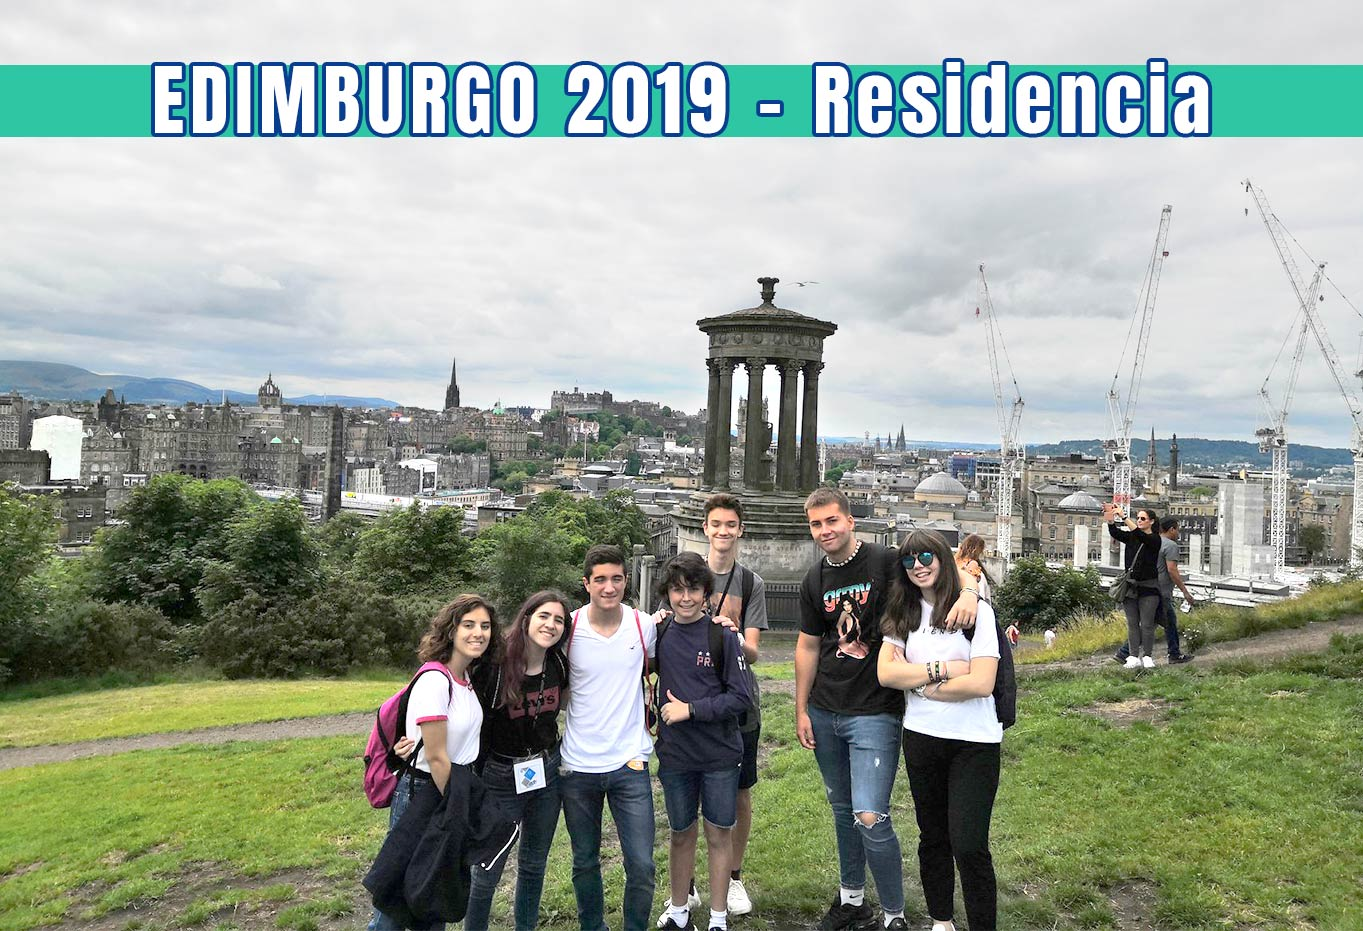 Program Review: EDIMBURGO 2019